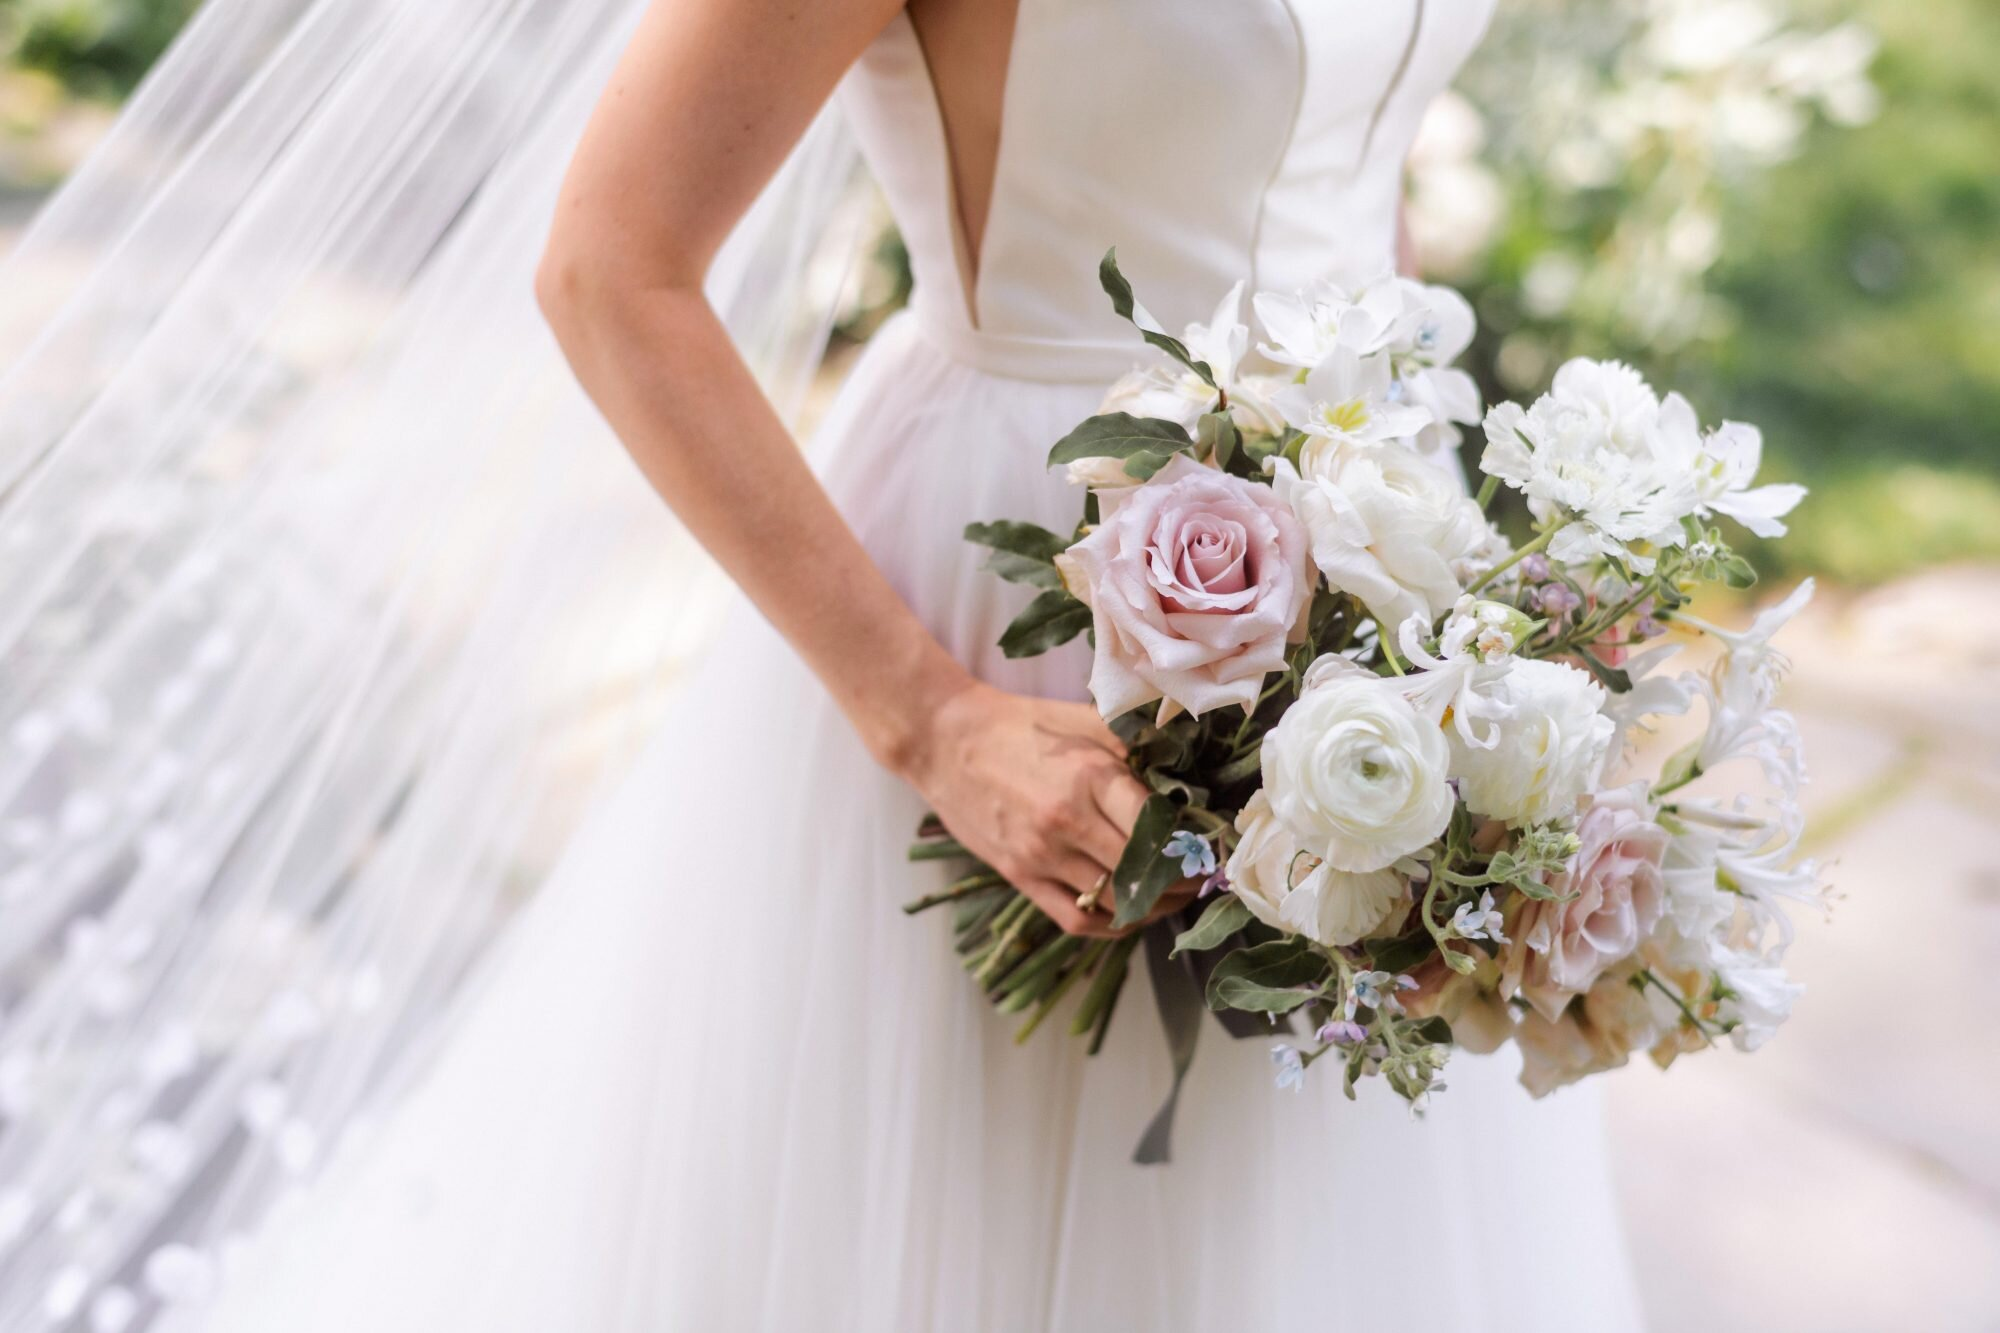 choose pink roses wedding bouquet for your wedding 4 - Choose Pink Roses Wedding Bouquet for Your Wedding